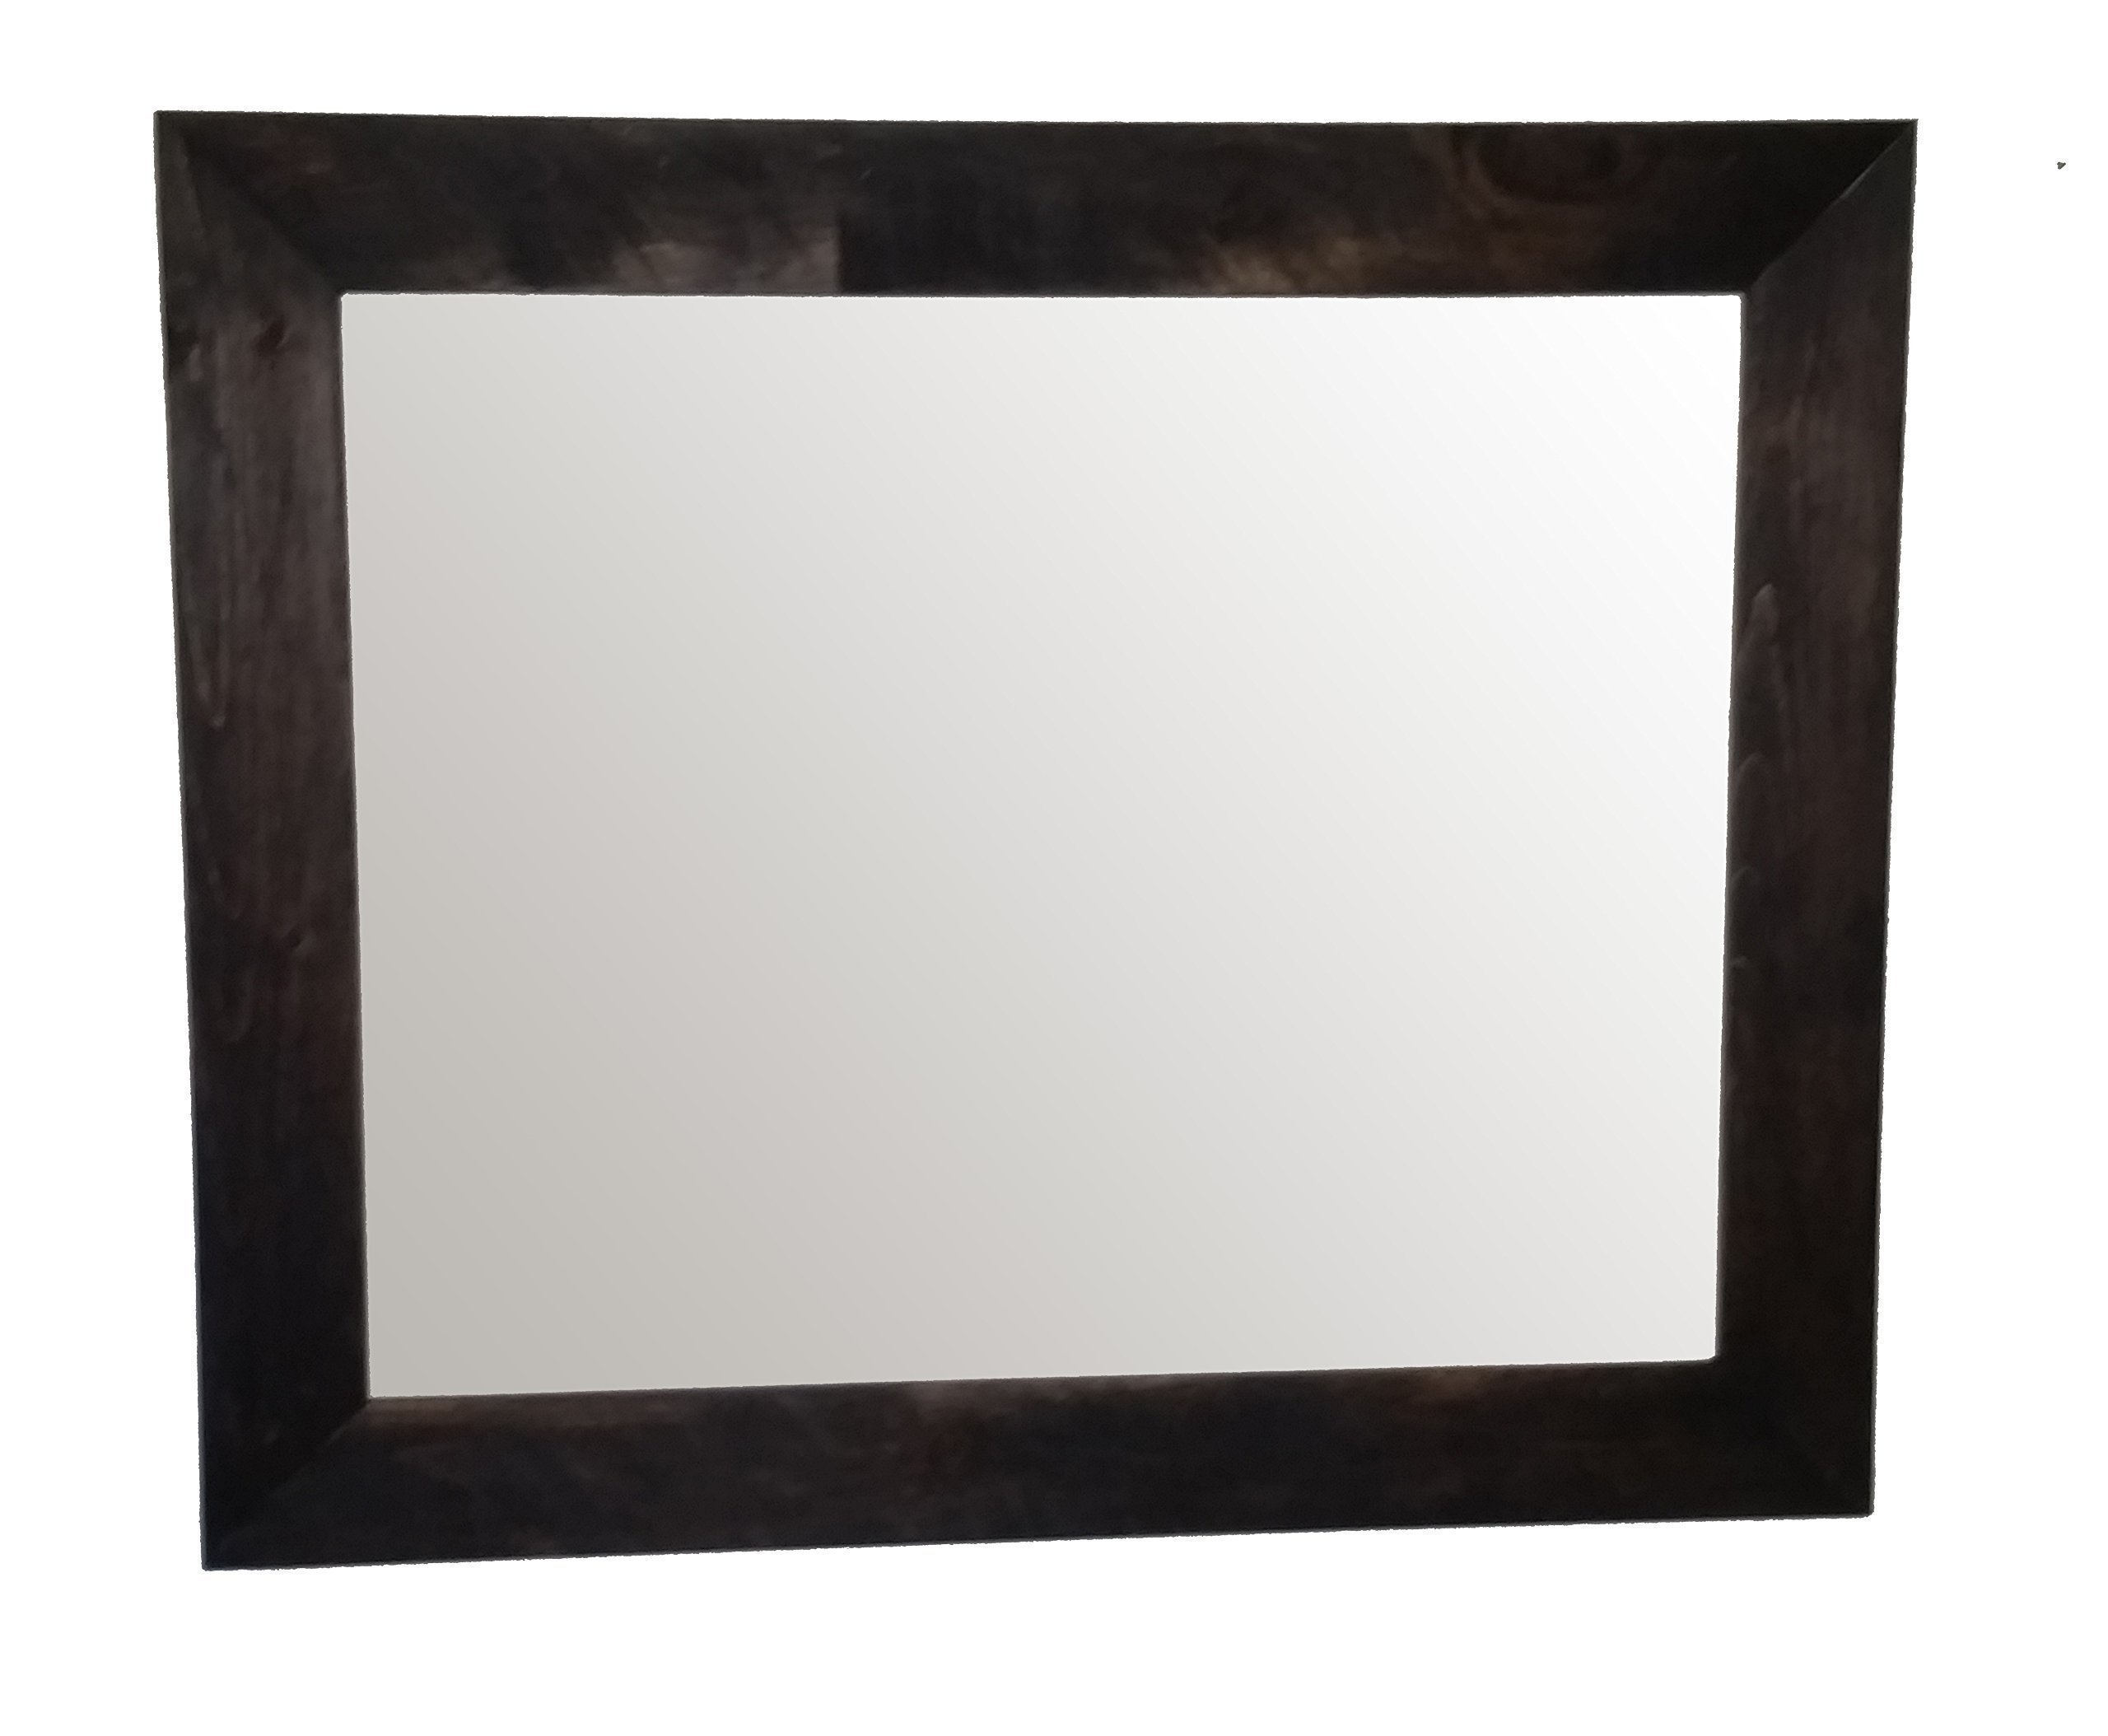 Shiplap Mirror 36x30 Horizontal Jacobean Stain Reclaimed Wood Mirror - Large Wall Mirror - Rustic Modern Home - Home Decor - Mirror - Housewares - Woodwork - Frame - Stained Mirror by Renewed Decor